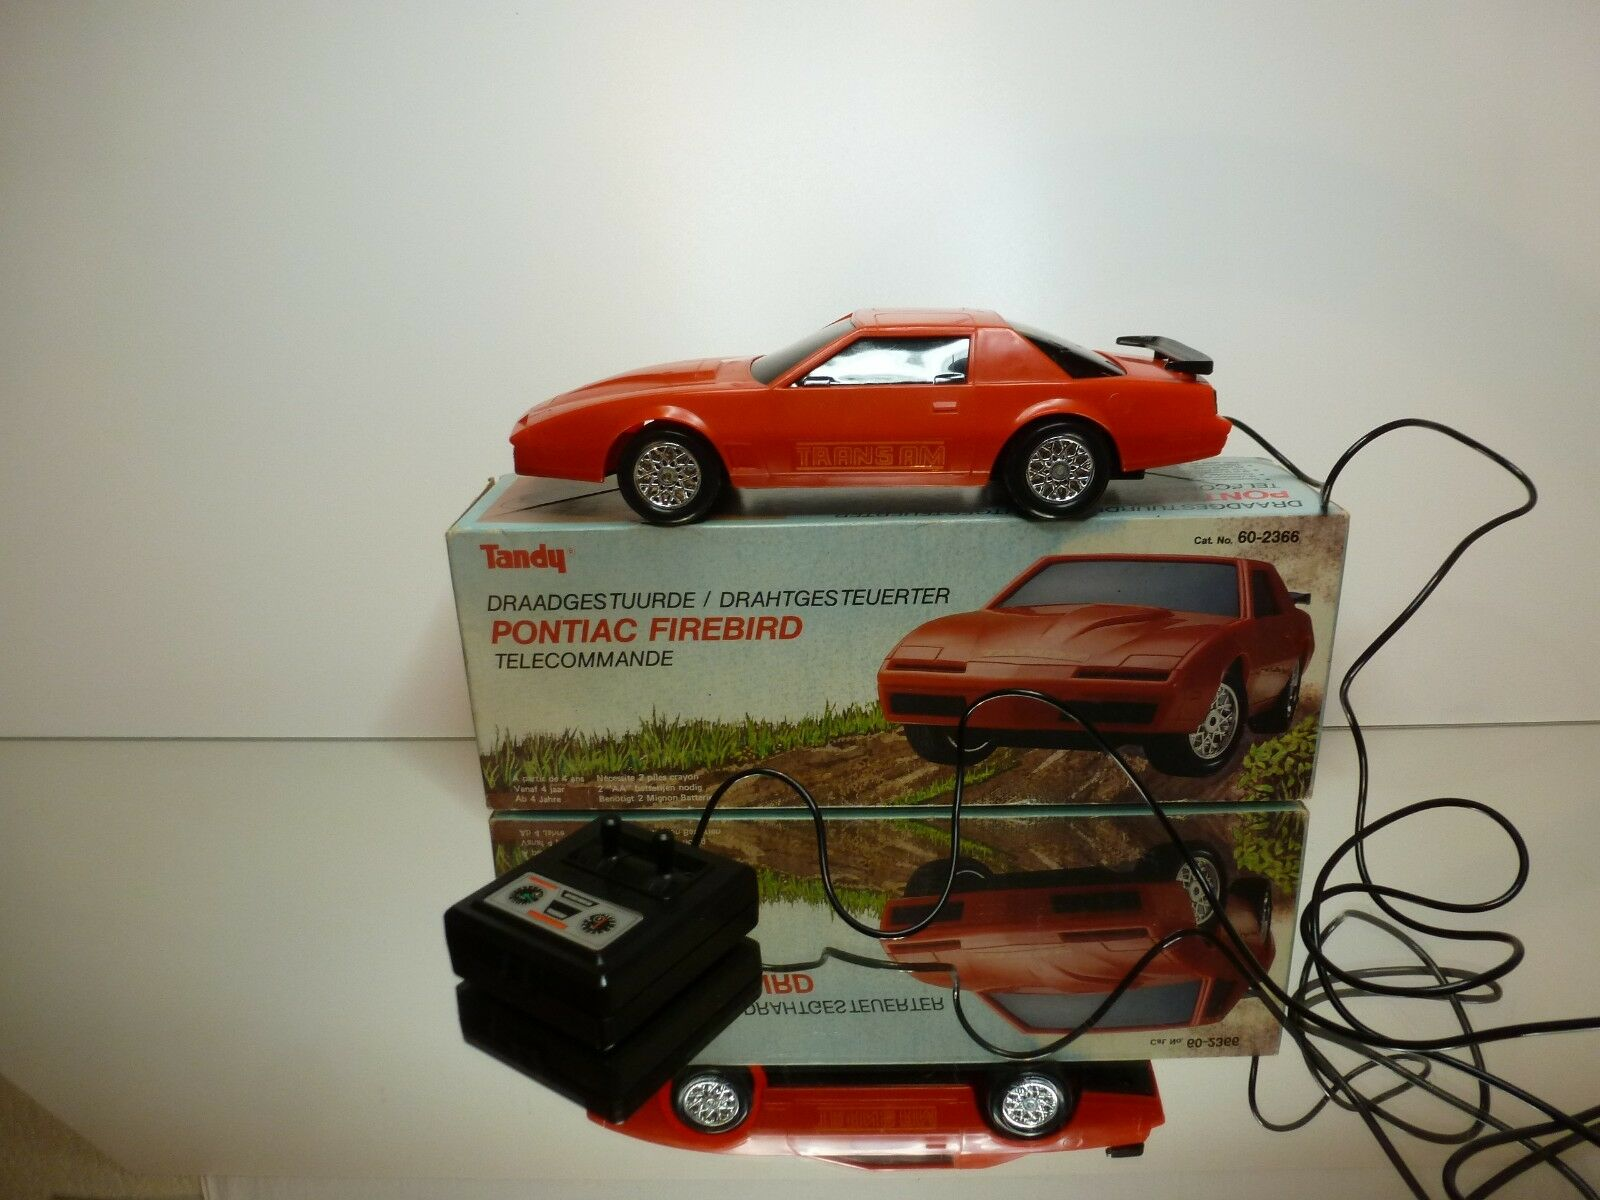 TANDY 60-2366 PONTIAC FIREBIRD - REMOTE CONTROL - rouge L26.5cm - GOOD  CONDITION